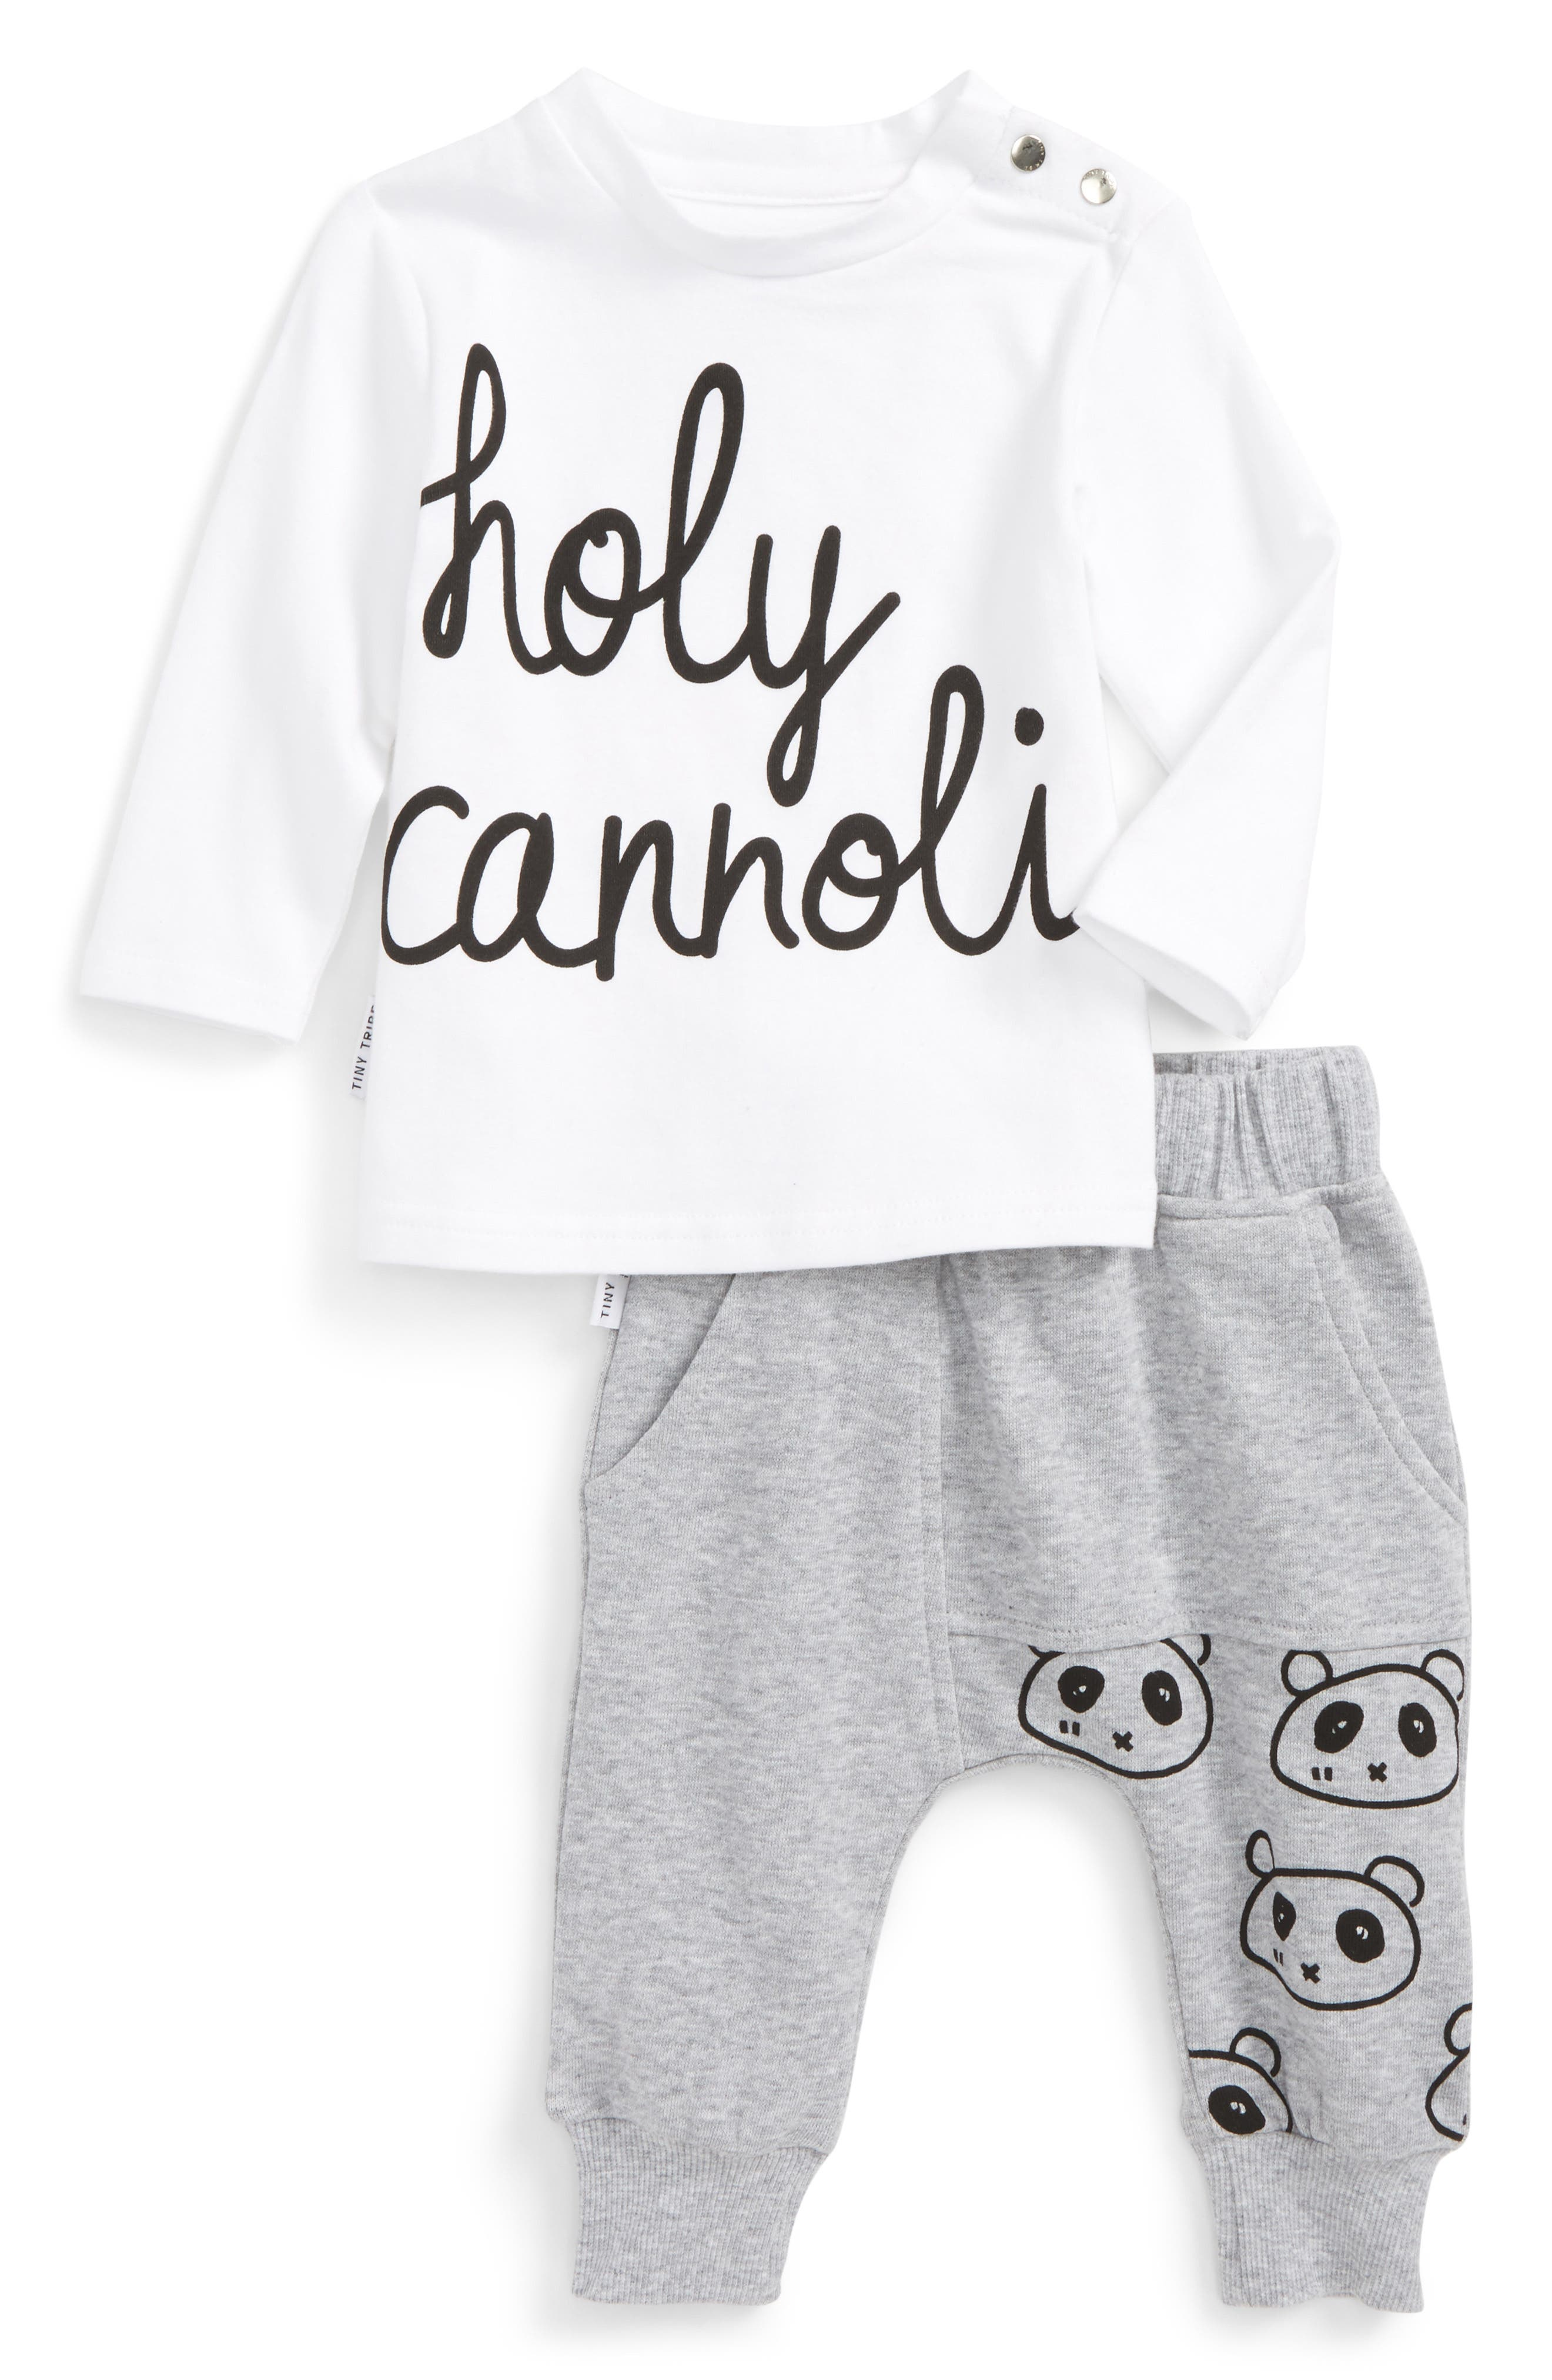 Tiny Tribe Holy Cannoli T-Shirt & Sweatpants (Baby & Toddler)